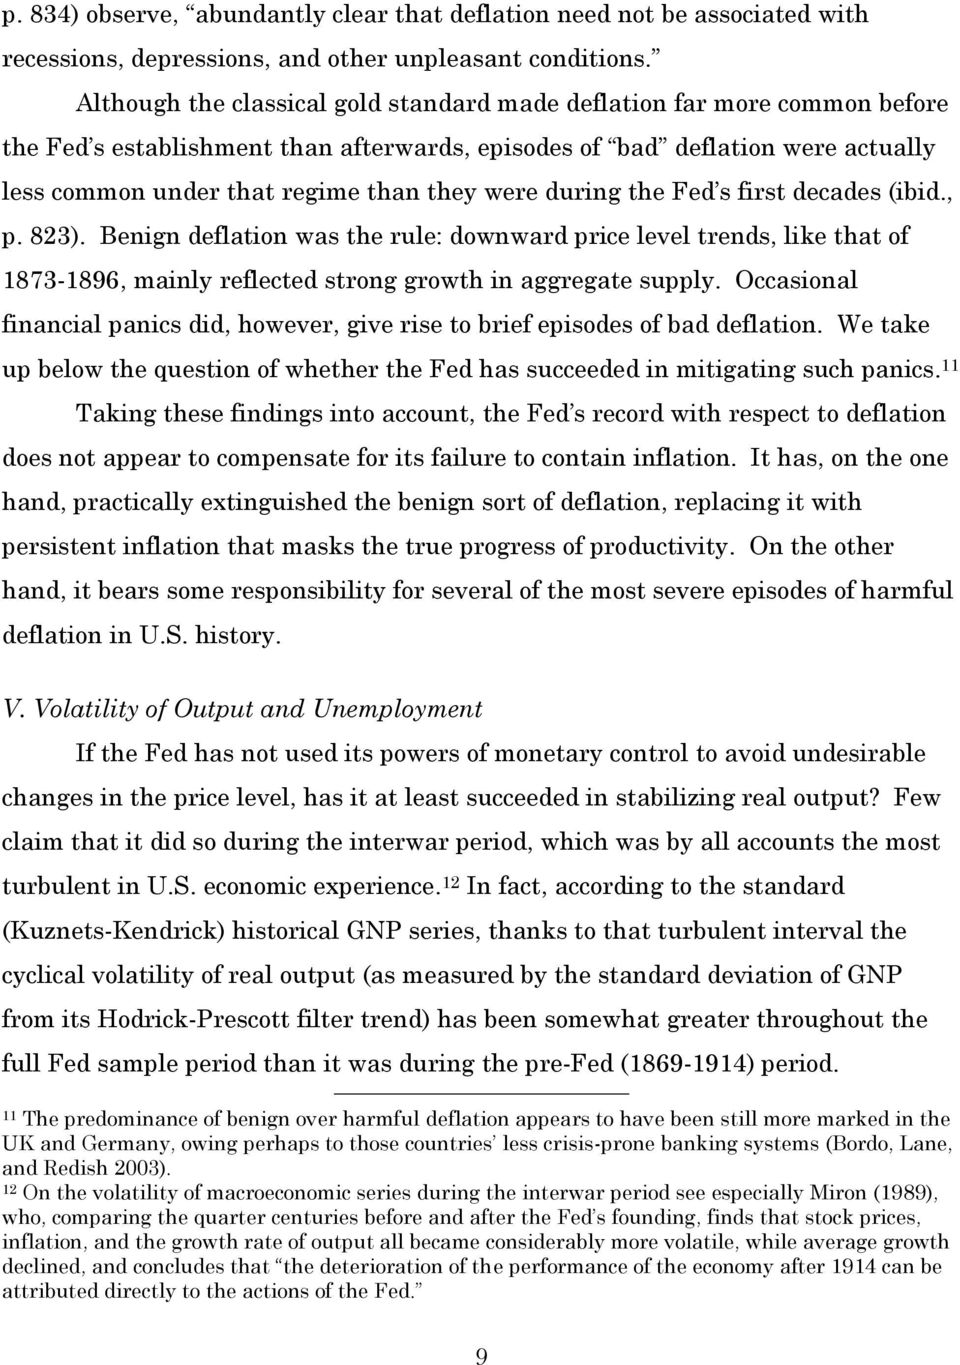 were during the Fed s first decades (ibid., p. 823). Benign deflation was the rule: downward price level trends, like that of 1873-1896, mainly reflected strong growth in aggregate supply.